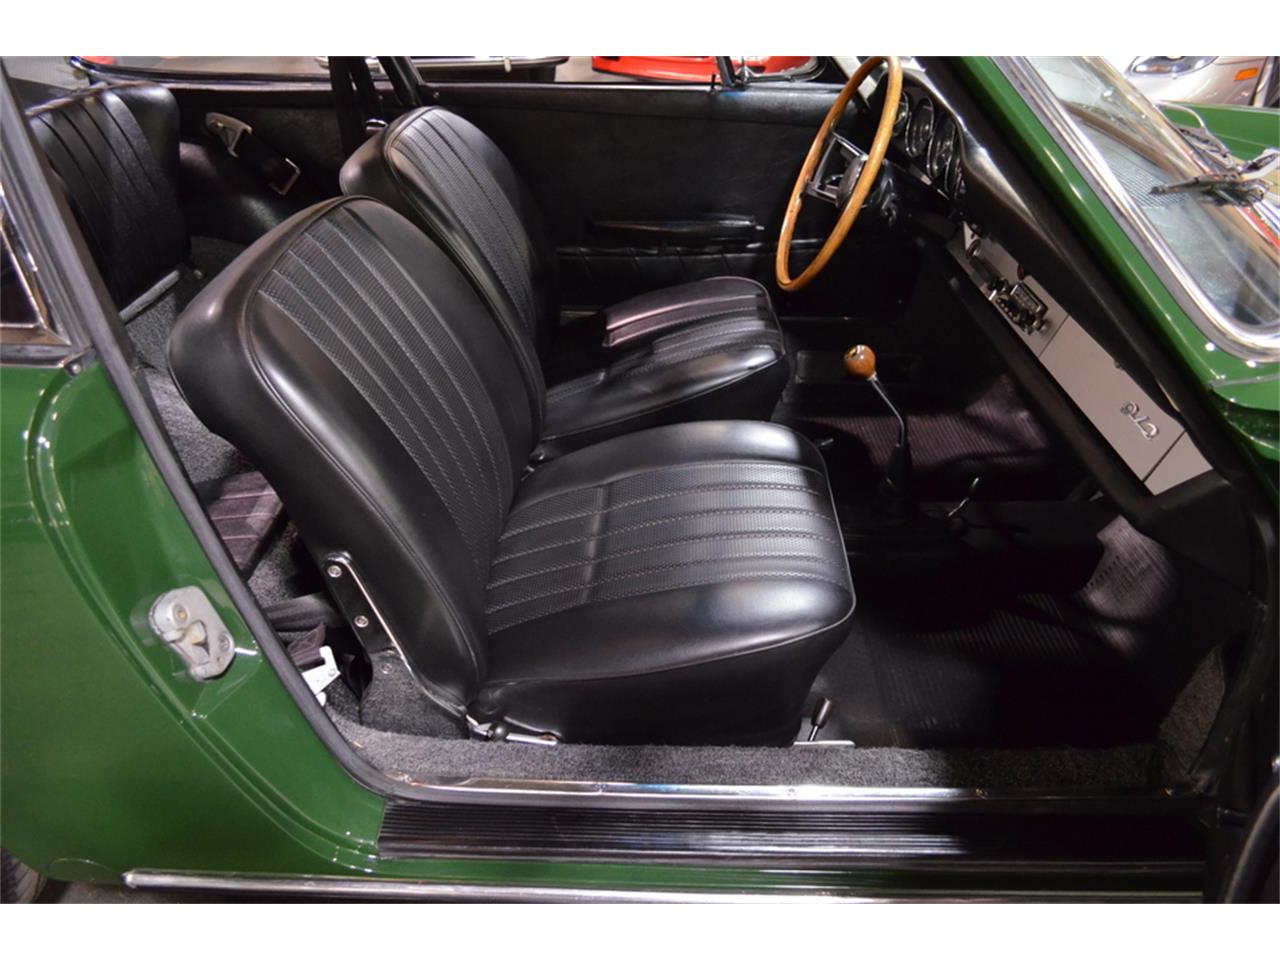 Large Picture of Classic 1966 Porsche 912 located in New York - $79,500.00 Offered by Autosport Designs Inc - PH4V